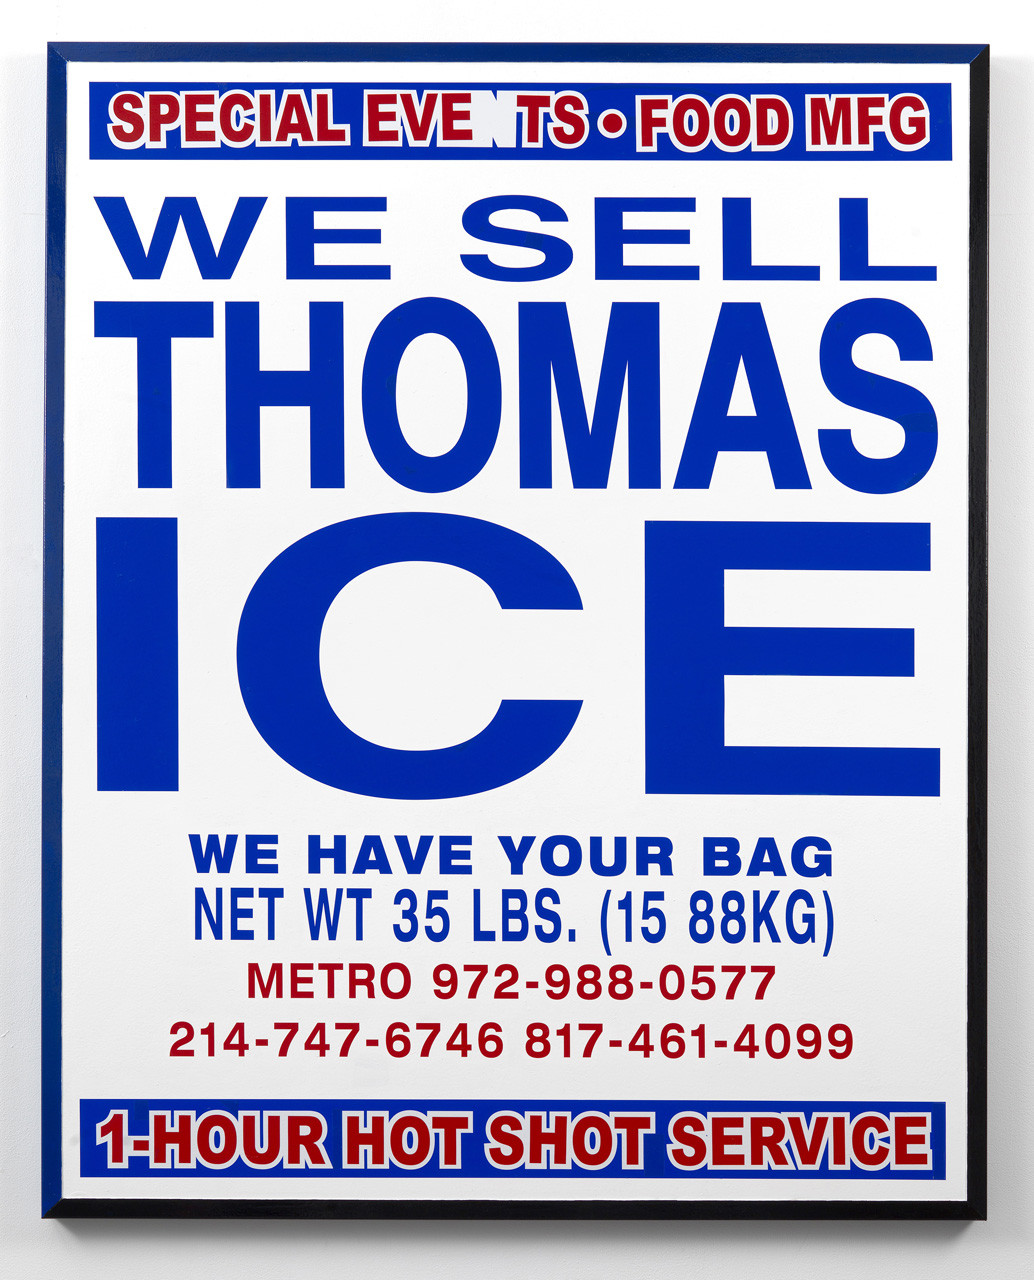 "<div class=""artwork_caption""><p>We Sell Thomas Ice, 2016</p></div>"